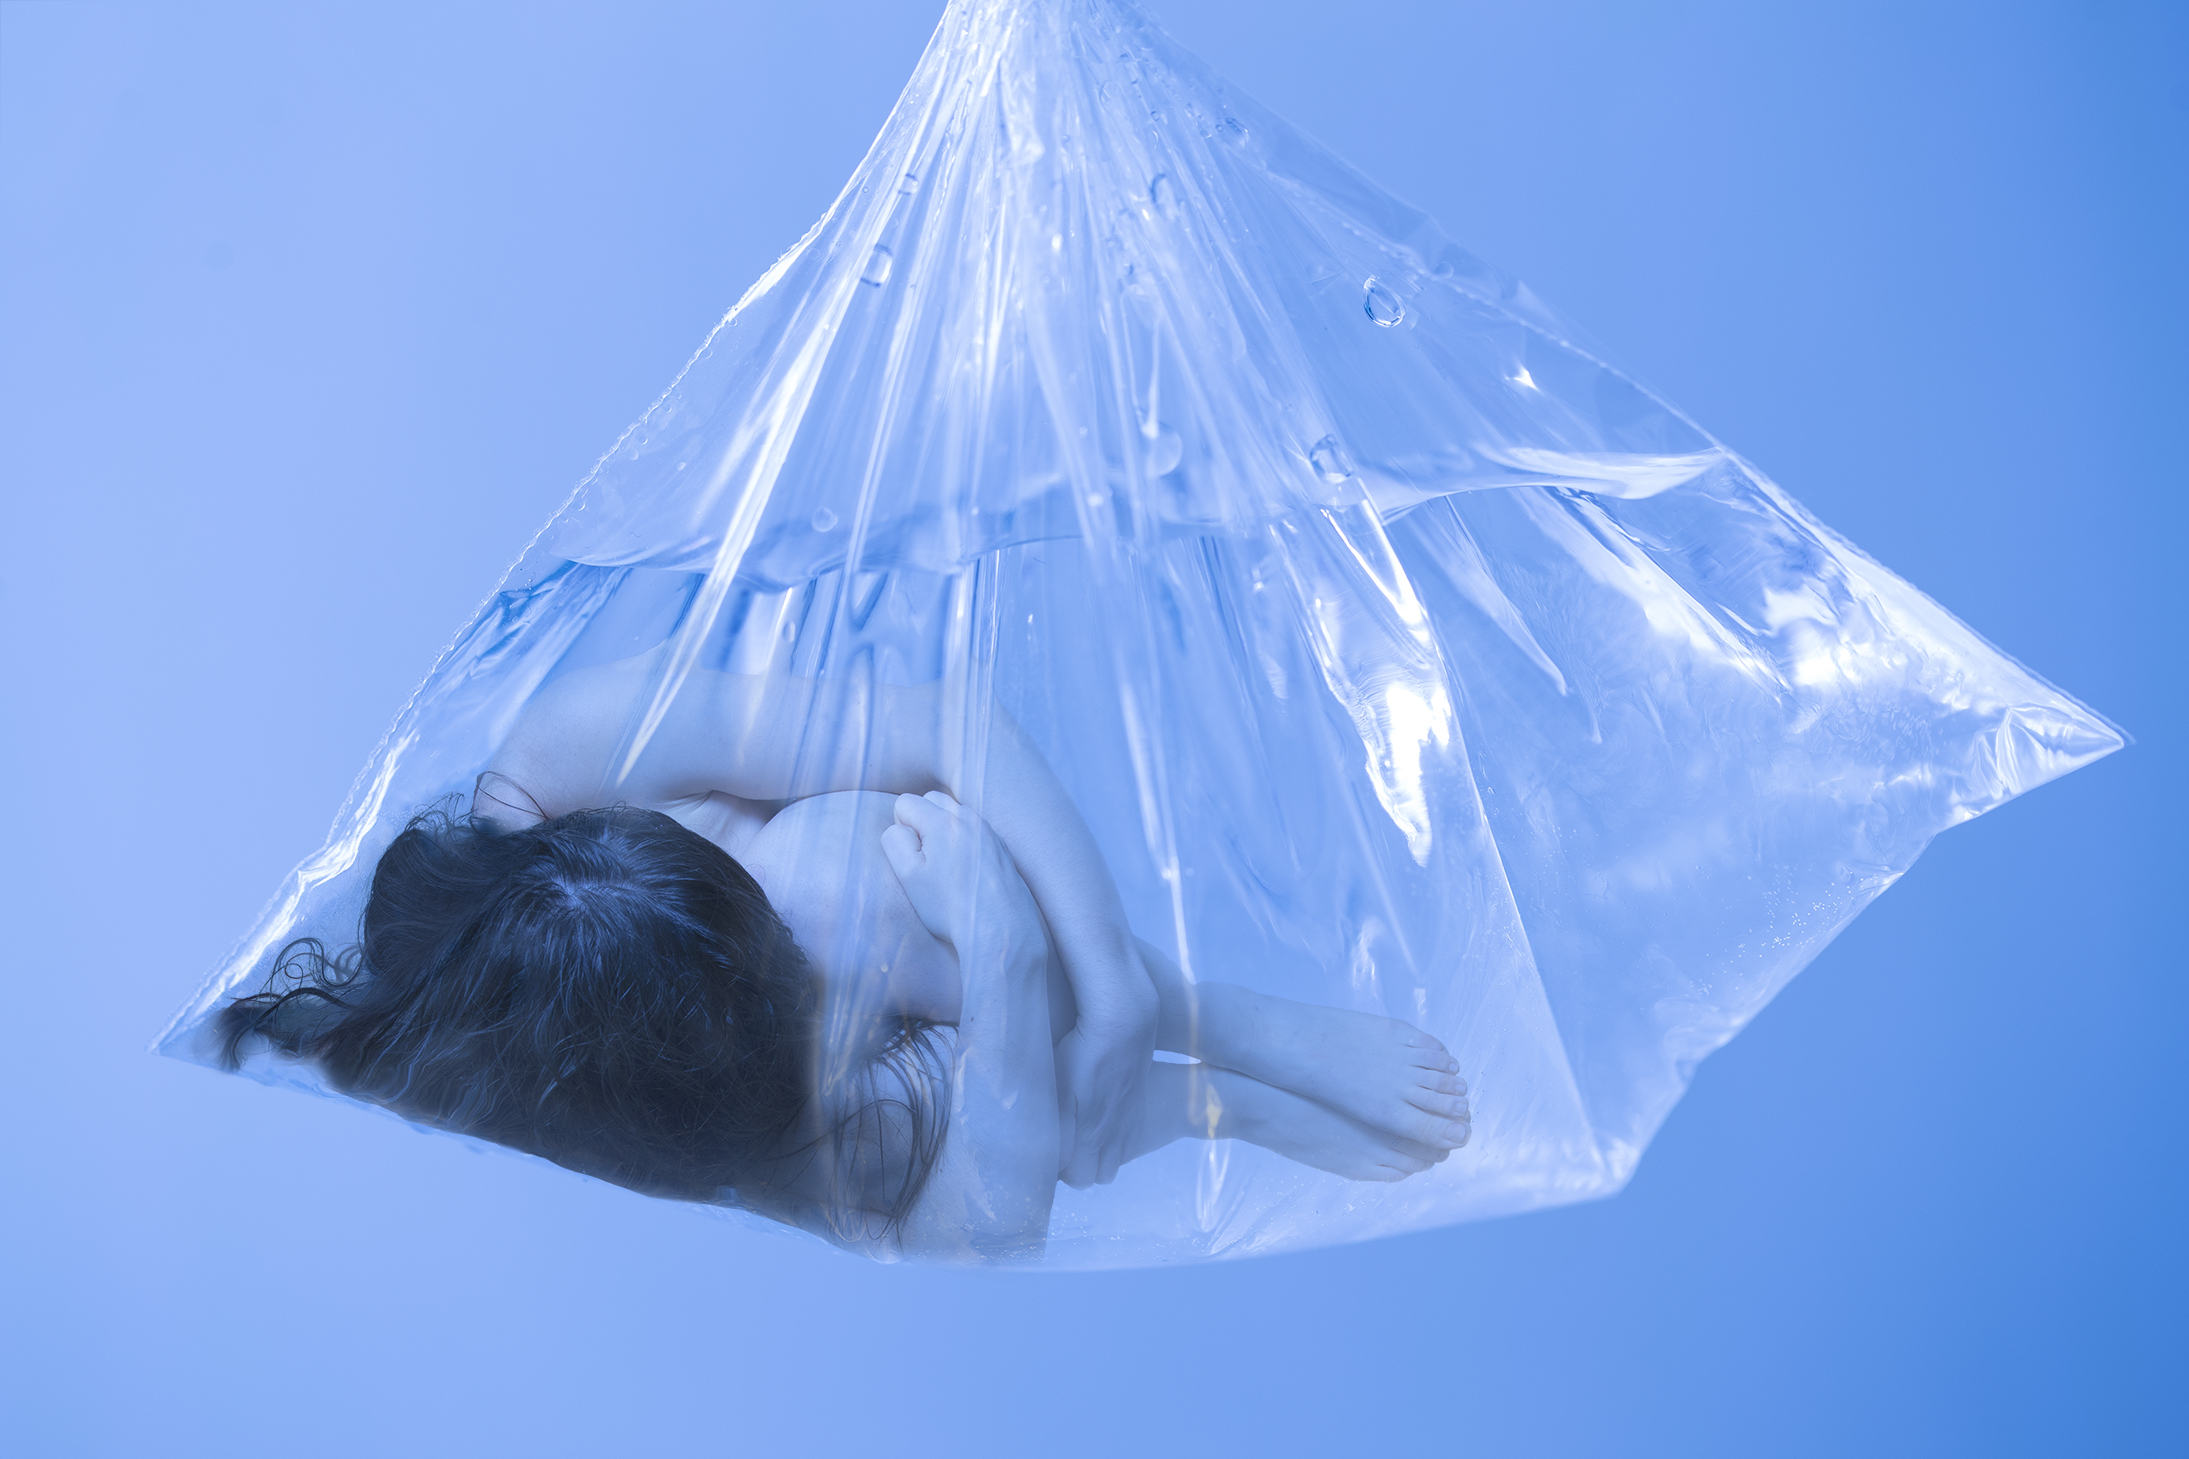 Portrait of a person inside of a plastic bag with water